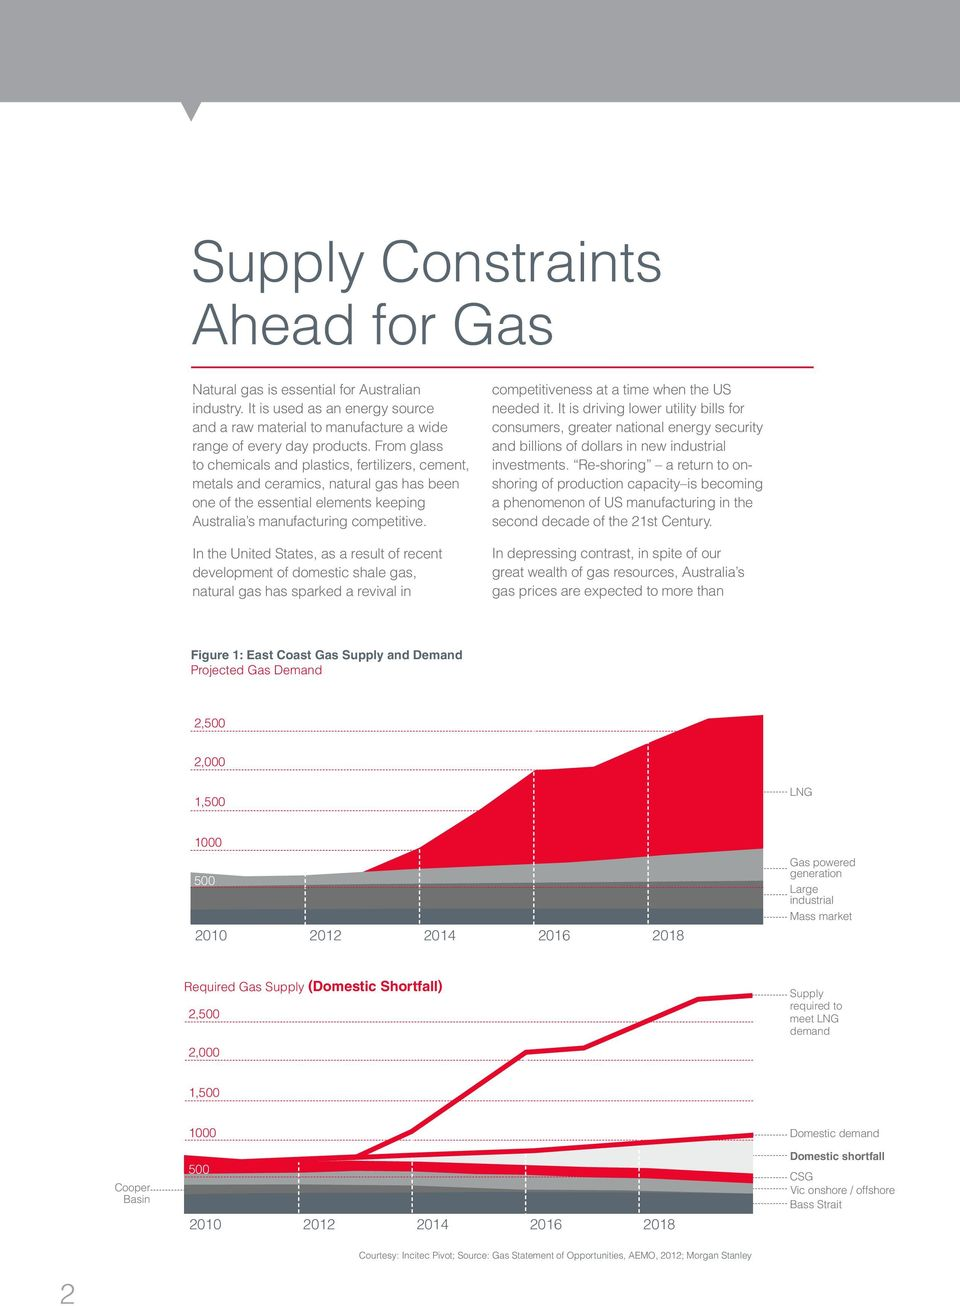 In the United States, as a result of recent development of domestic shale gas, natural gas has sparked a revival in competitiveness at a time when the US needed it.